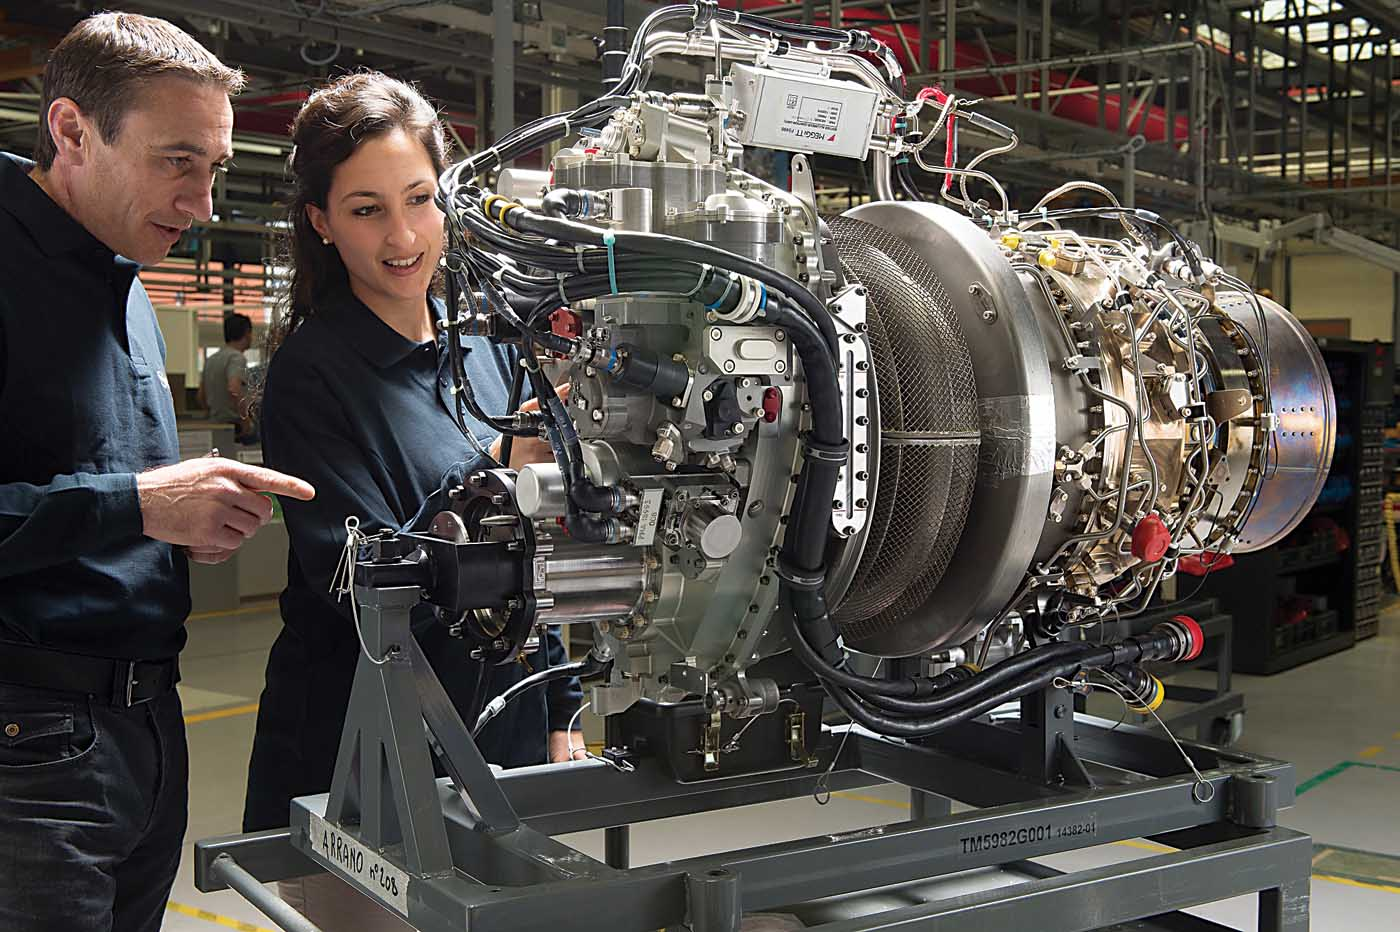 Engineers at Safran Helicopter Engines take a look at the Arrano -- the manufacturer's new 1,100- to 1,300-horsepower engine that powers the Airbus H160. Safran uses selective laser melting to create the Arrano's fuel injector nozzles. Safran Photo